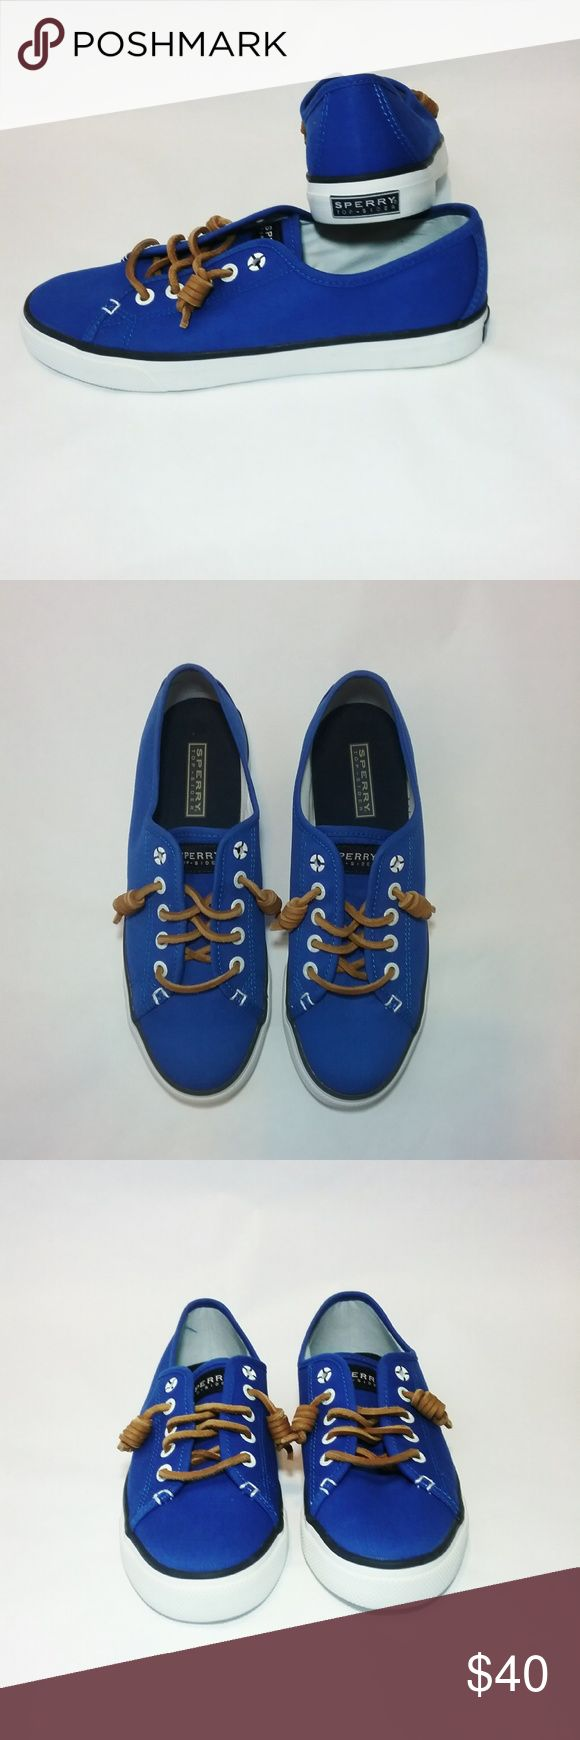 Blue Canvas Sperry Top-Sider Sneakers Size 7 1/2 Like new Sperry Top - Sider. These shoes are blue canvas, slip on style with leather laces. As you can see they are hardly worn and in excellent shape.   Condition: Like New Size: 7 1/2 Material: Canvas	  Inv F21 Sperry Shoes Sneakers